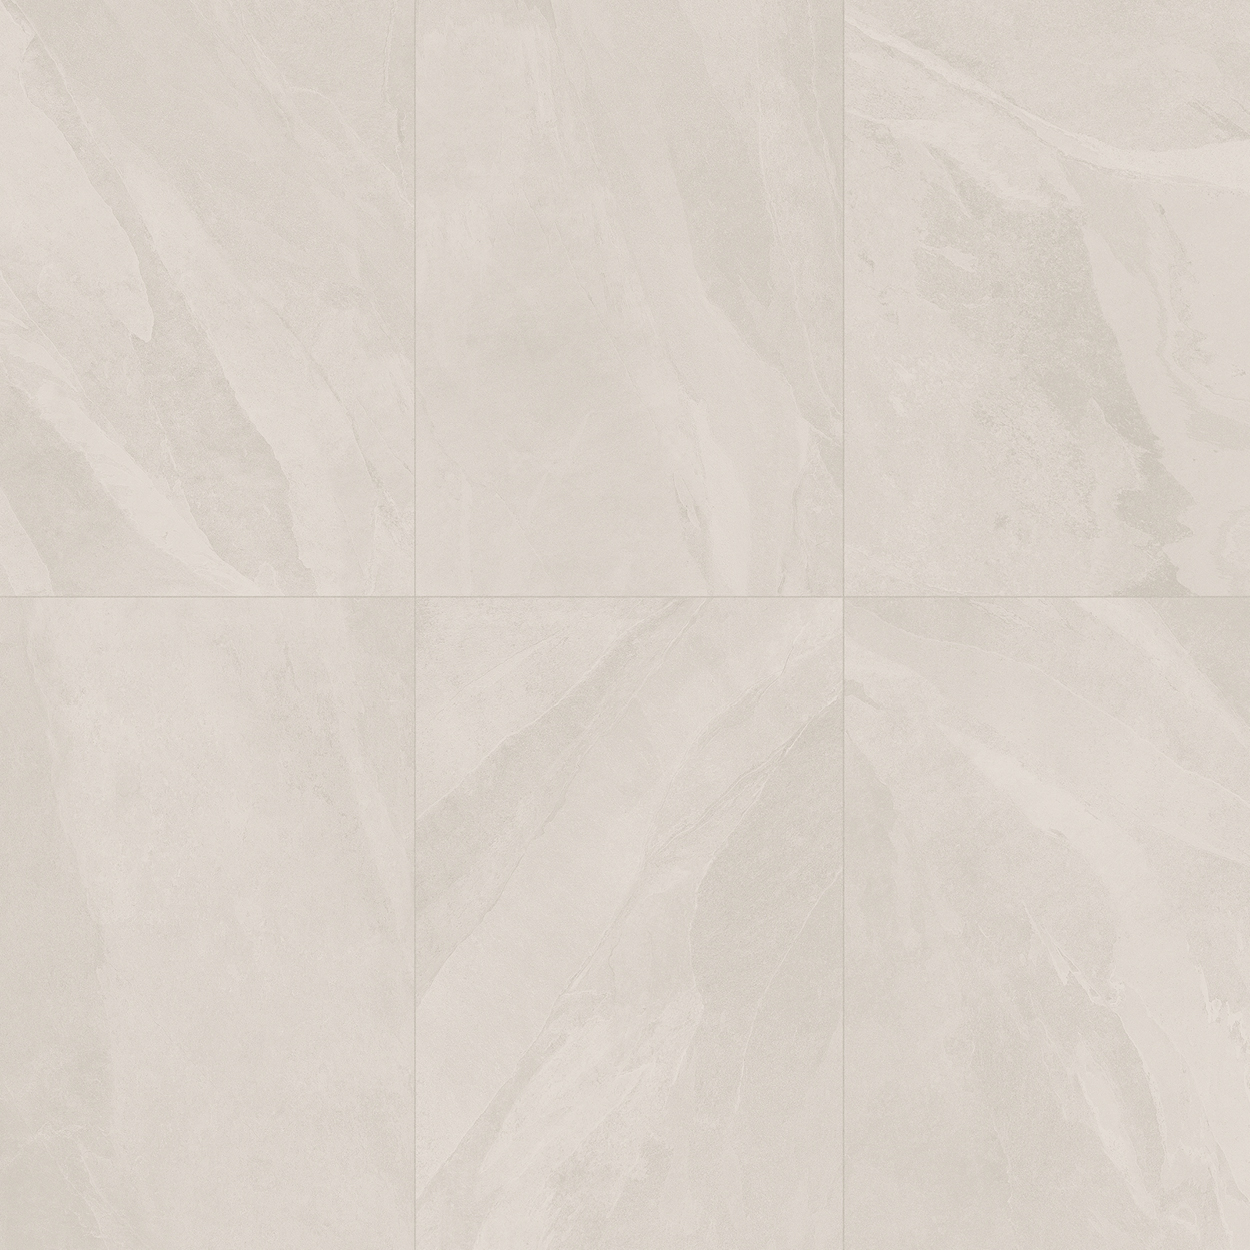 24 x 48 Brazilian Slate Oxford white Rectified Porcelain tile